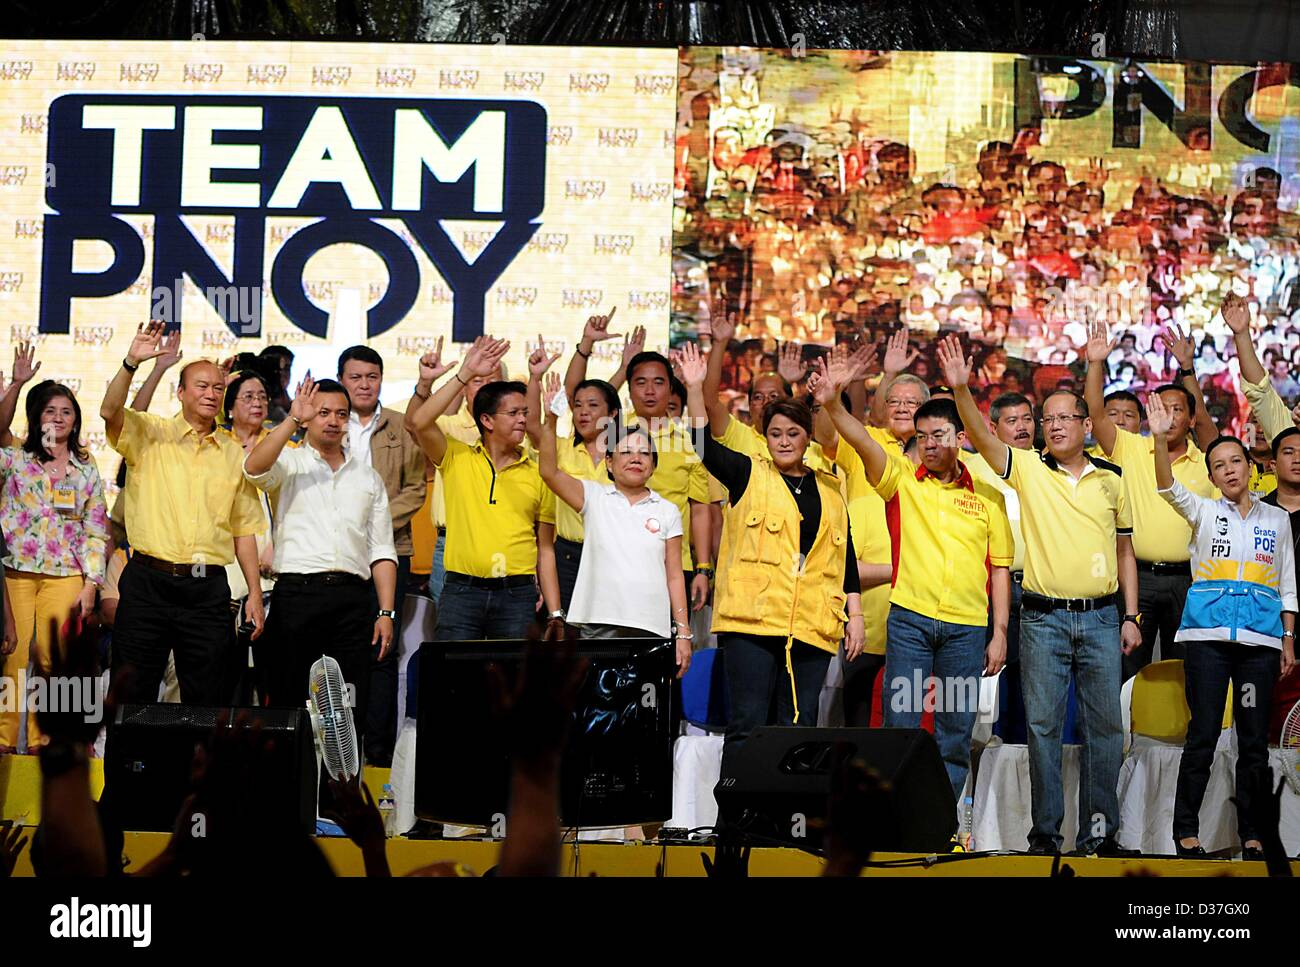 Manila, Philippines. 12th February 2013. Administration senatorial candidates together with Philippine President - Stock Image